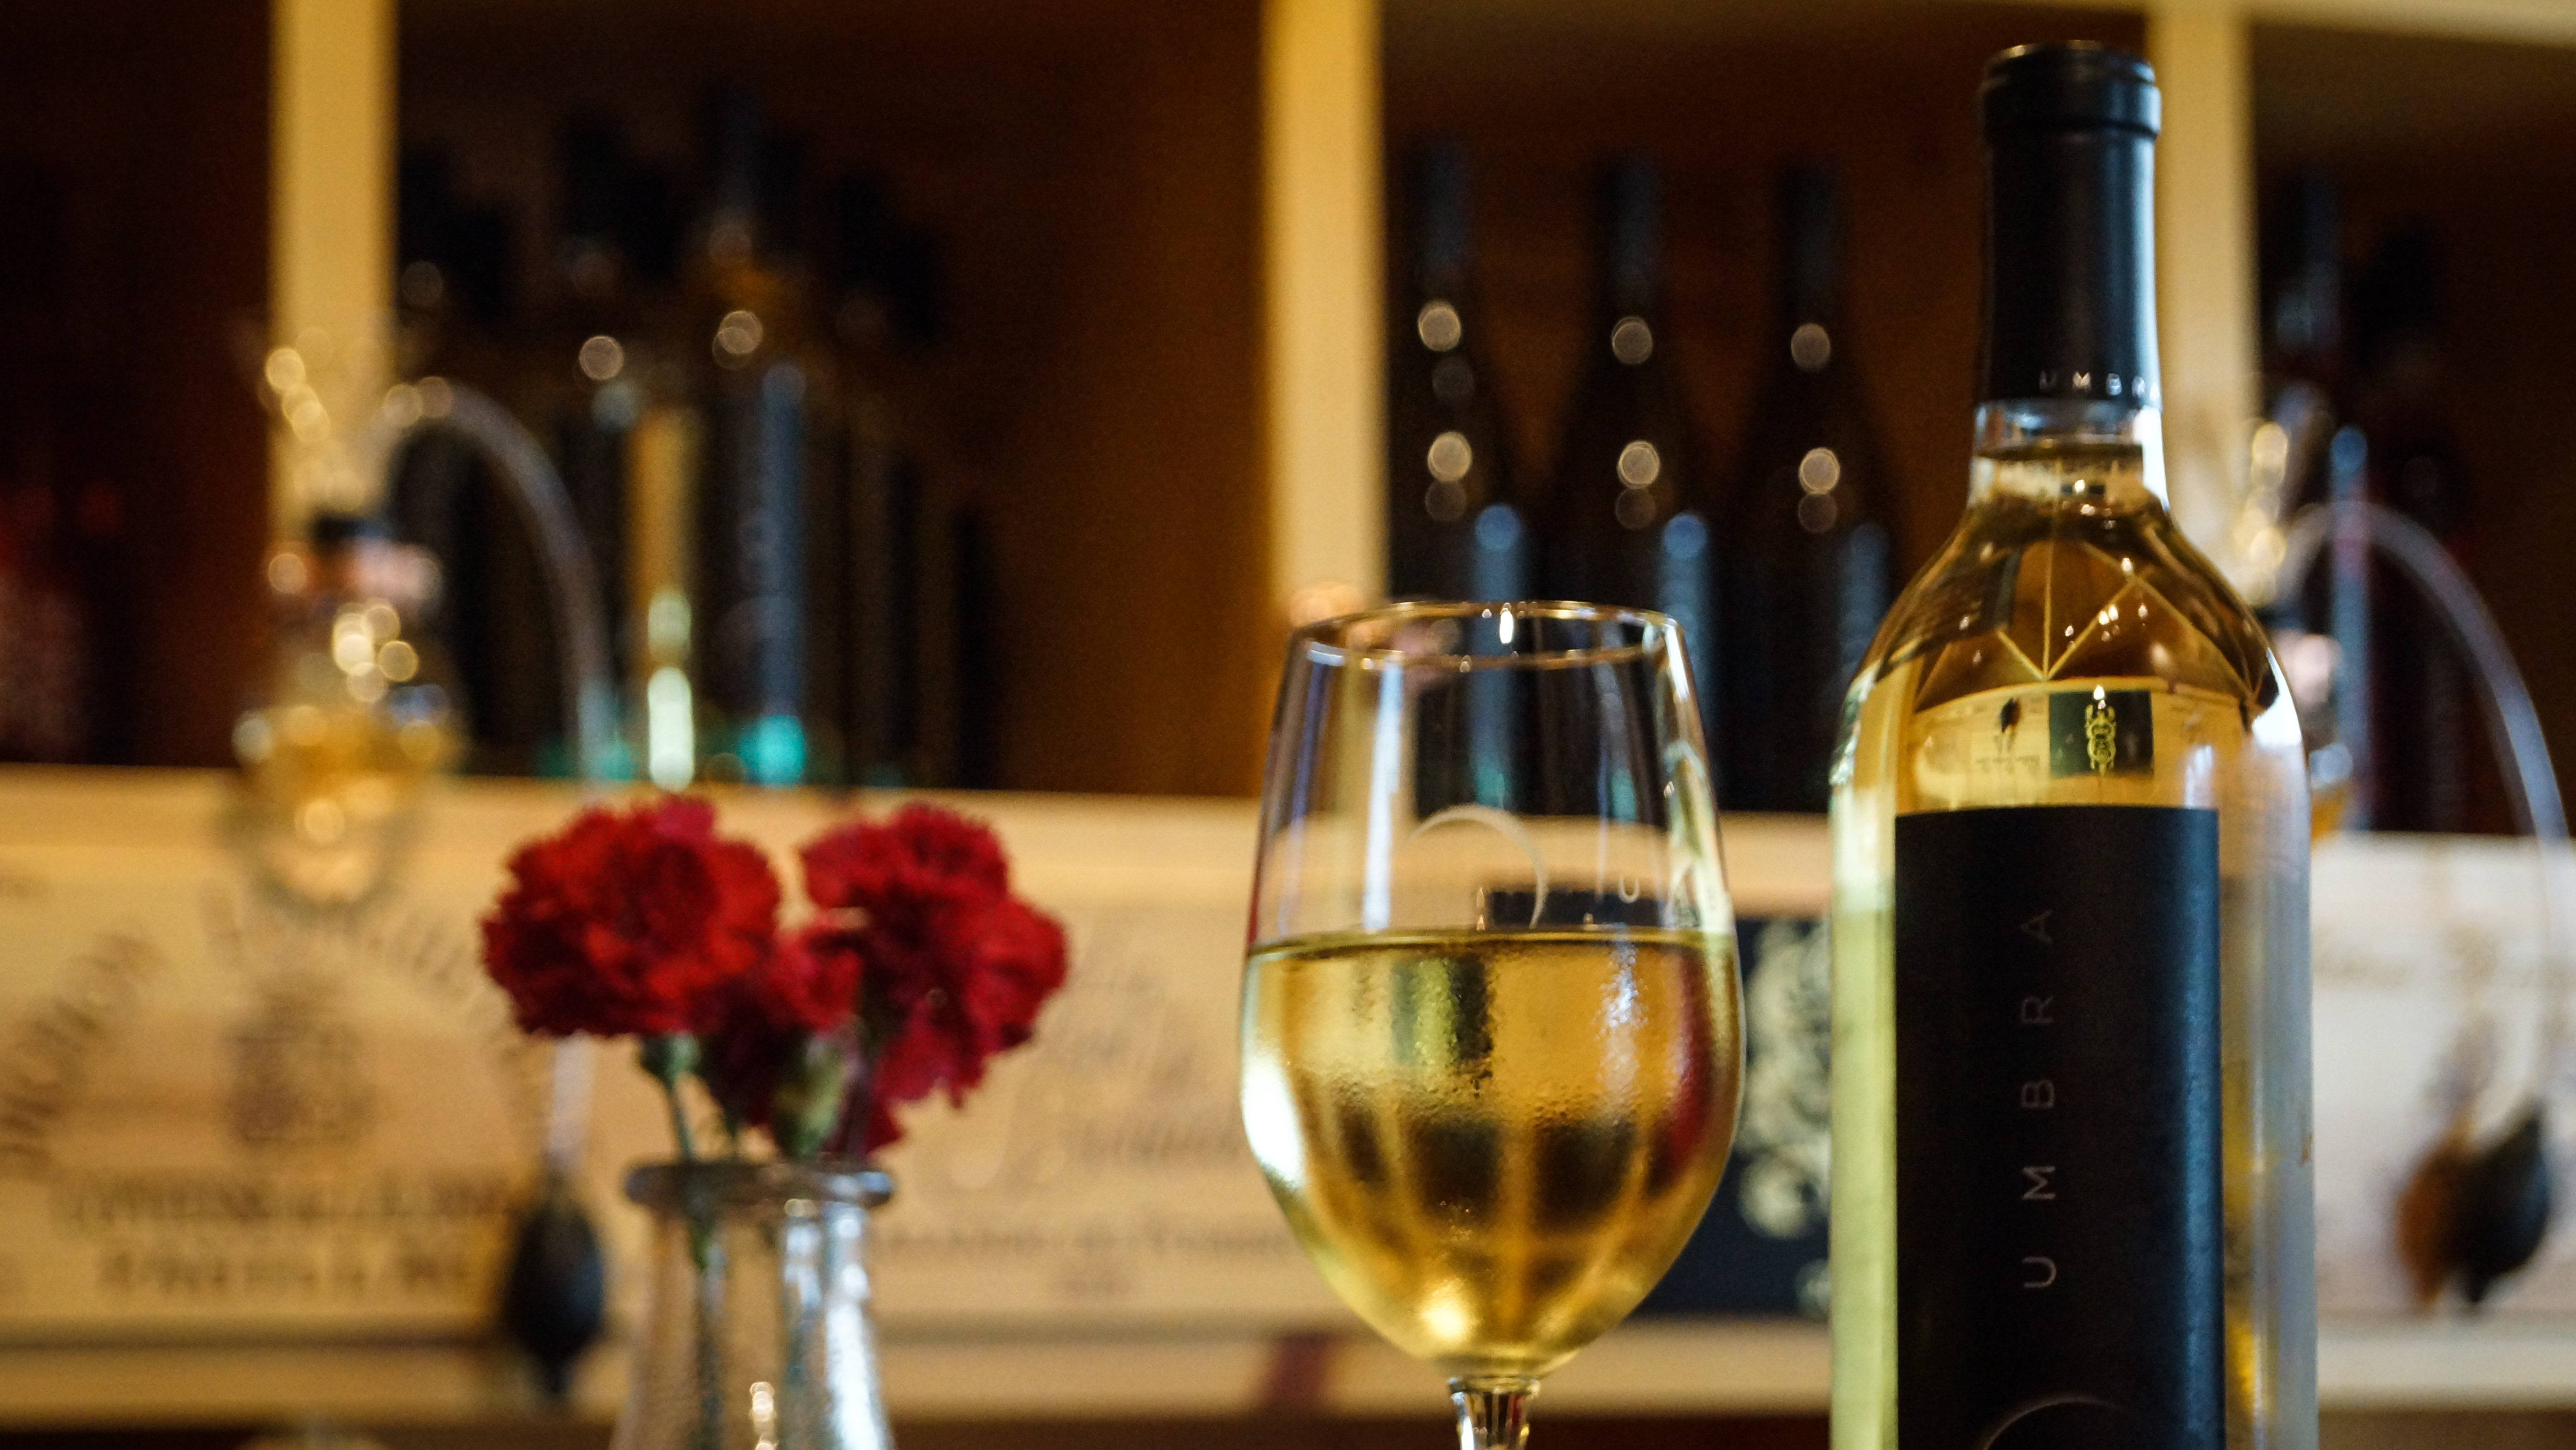 A Sip of Roussane in Grapevine, Texas